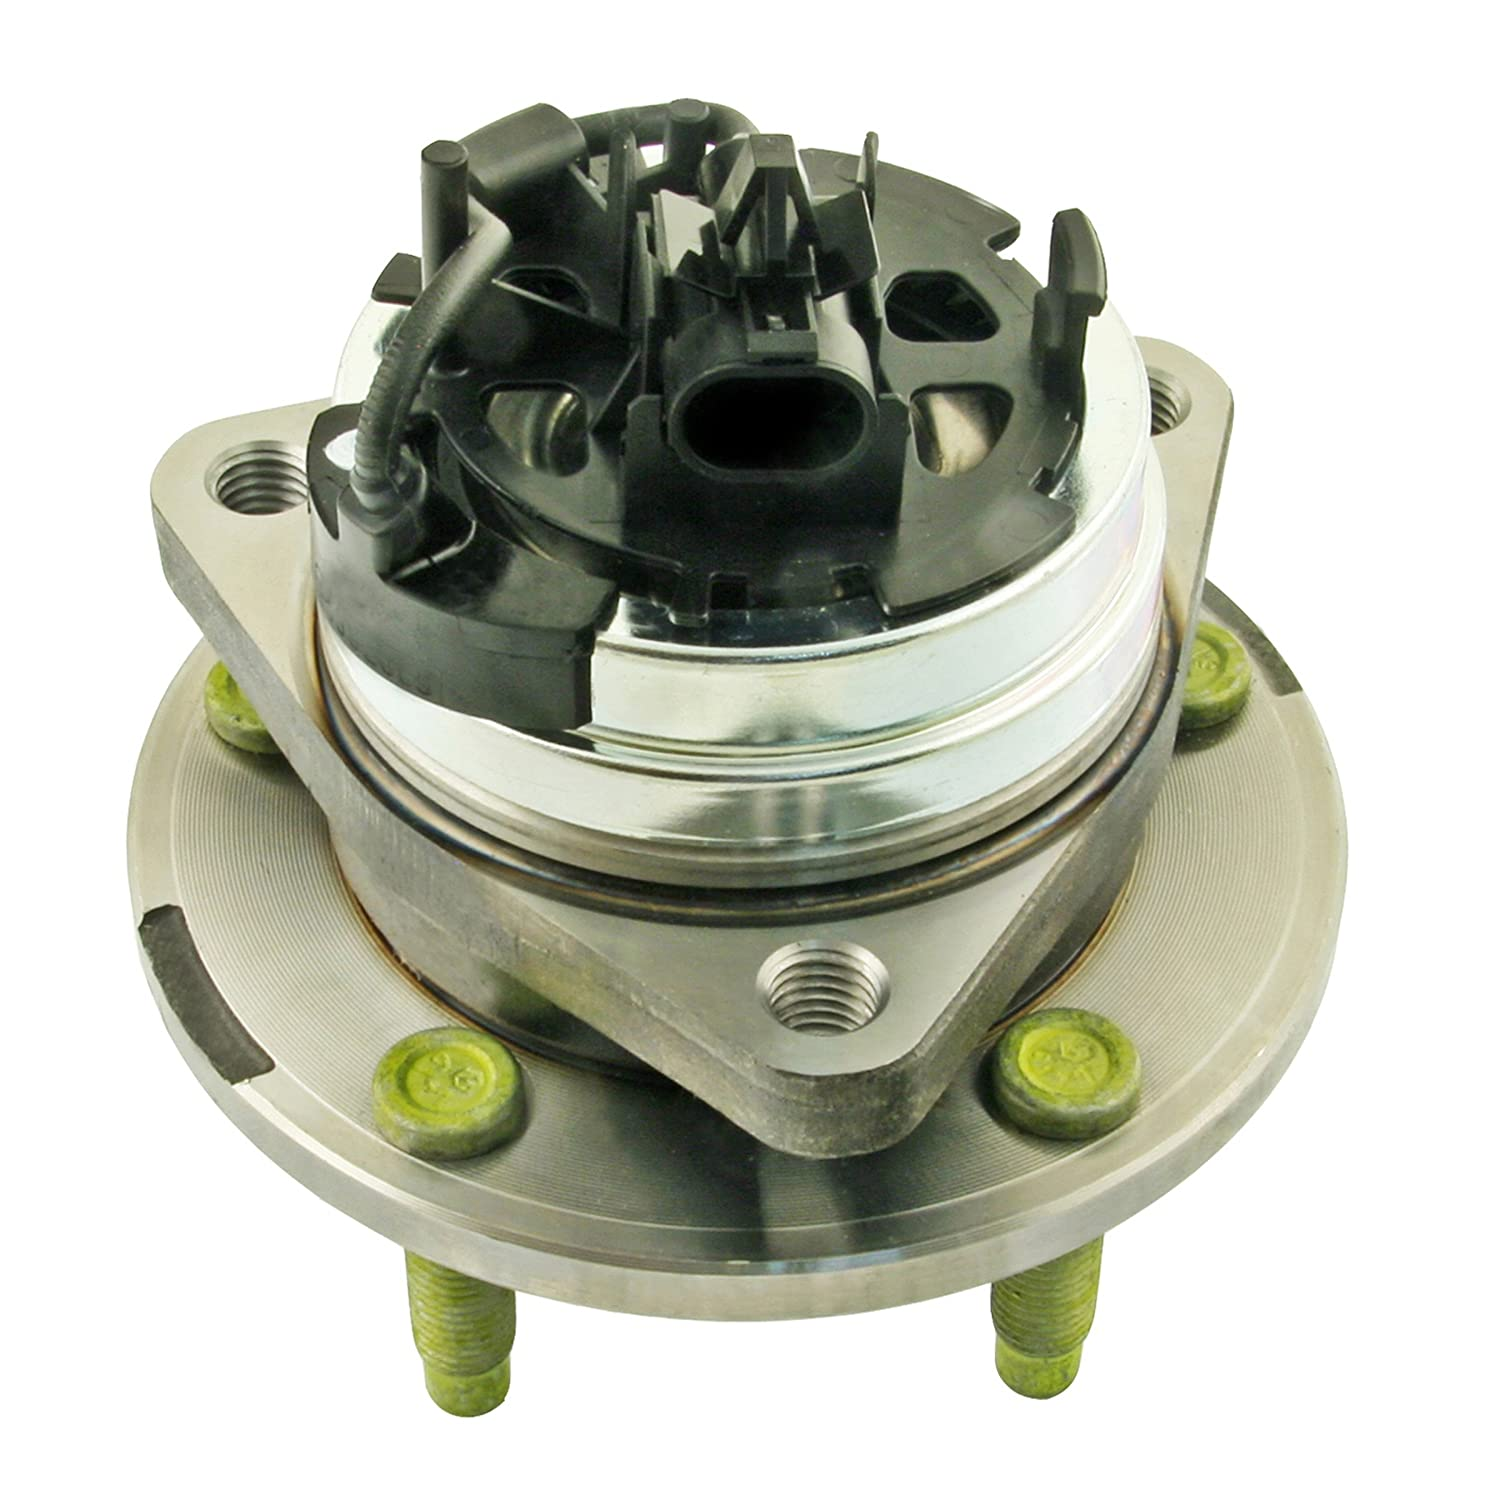 ACDelco 513214 Advantage Front Wheel Hub and Bearing Assembly with Wheel Speed Sensor and Wheel Studs